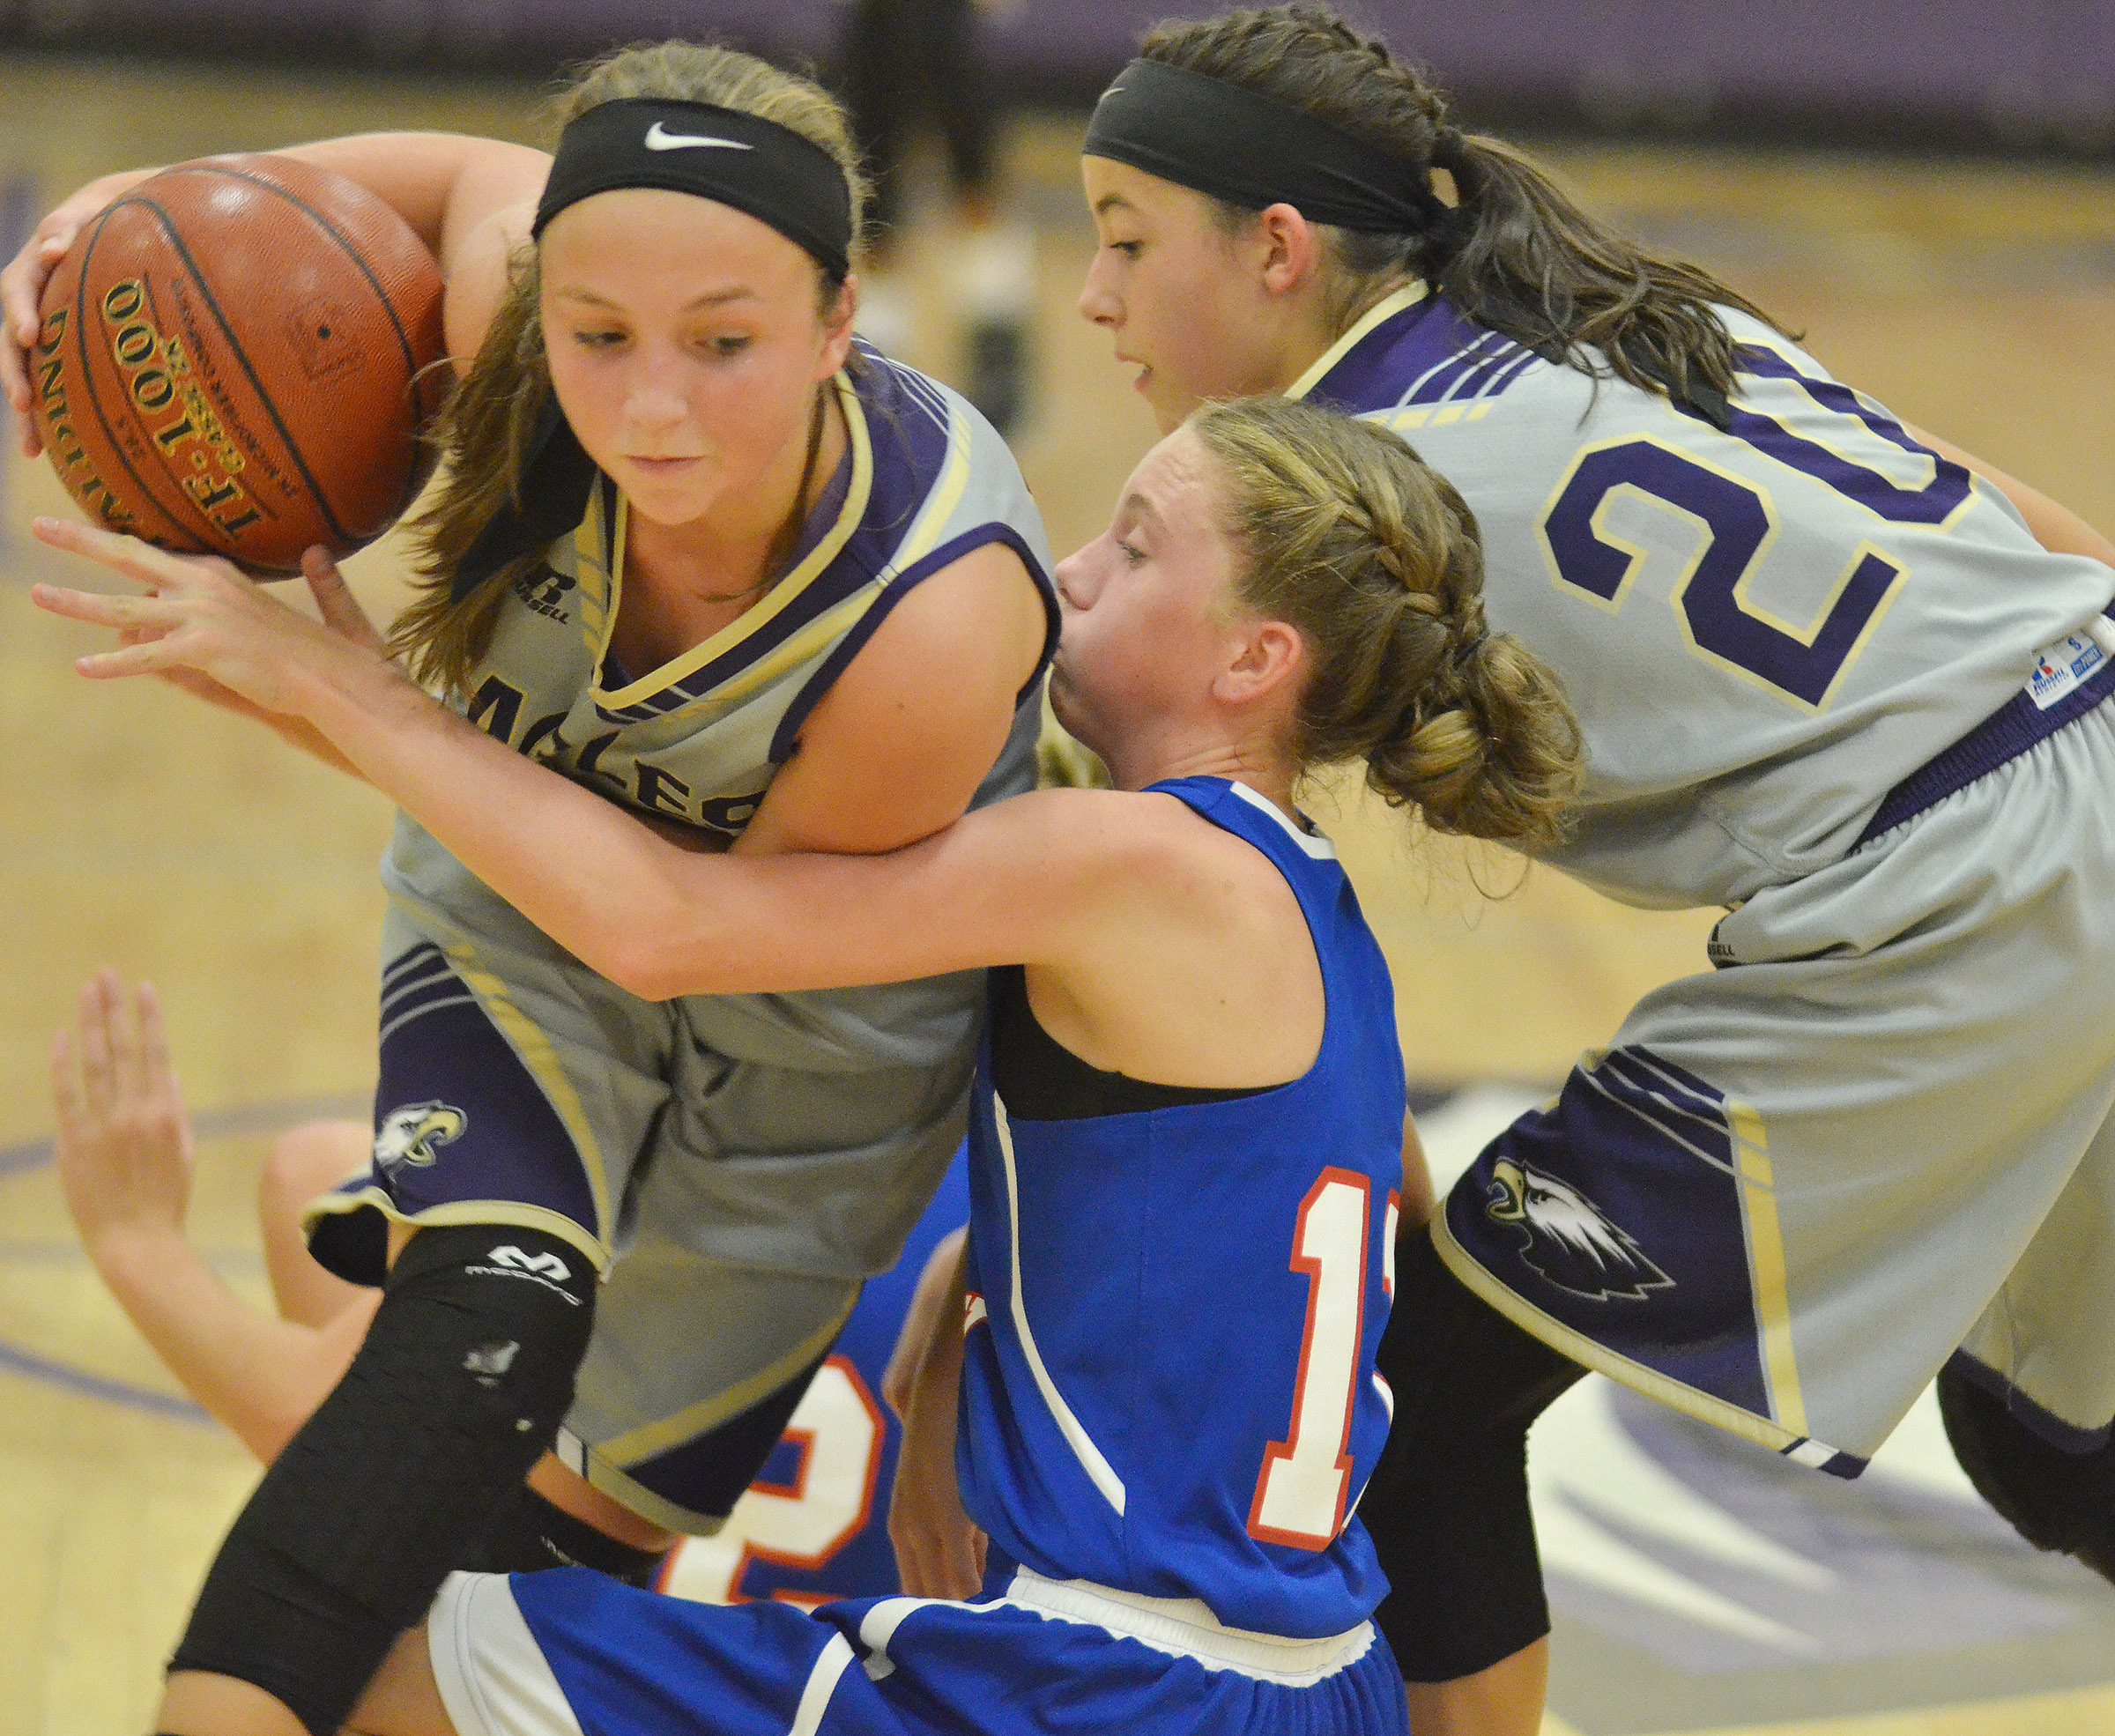 CMS eighth-graders Lainey Watson, at left, and Kaylyn Smith battle for the ball.